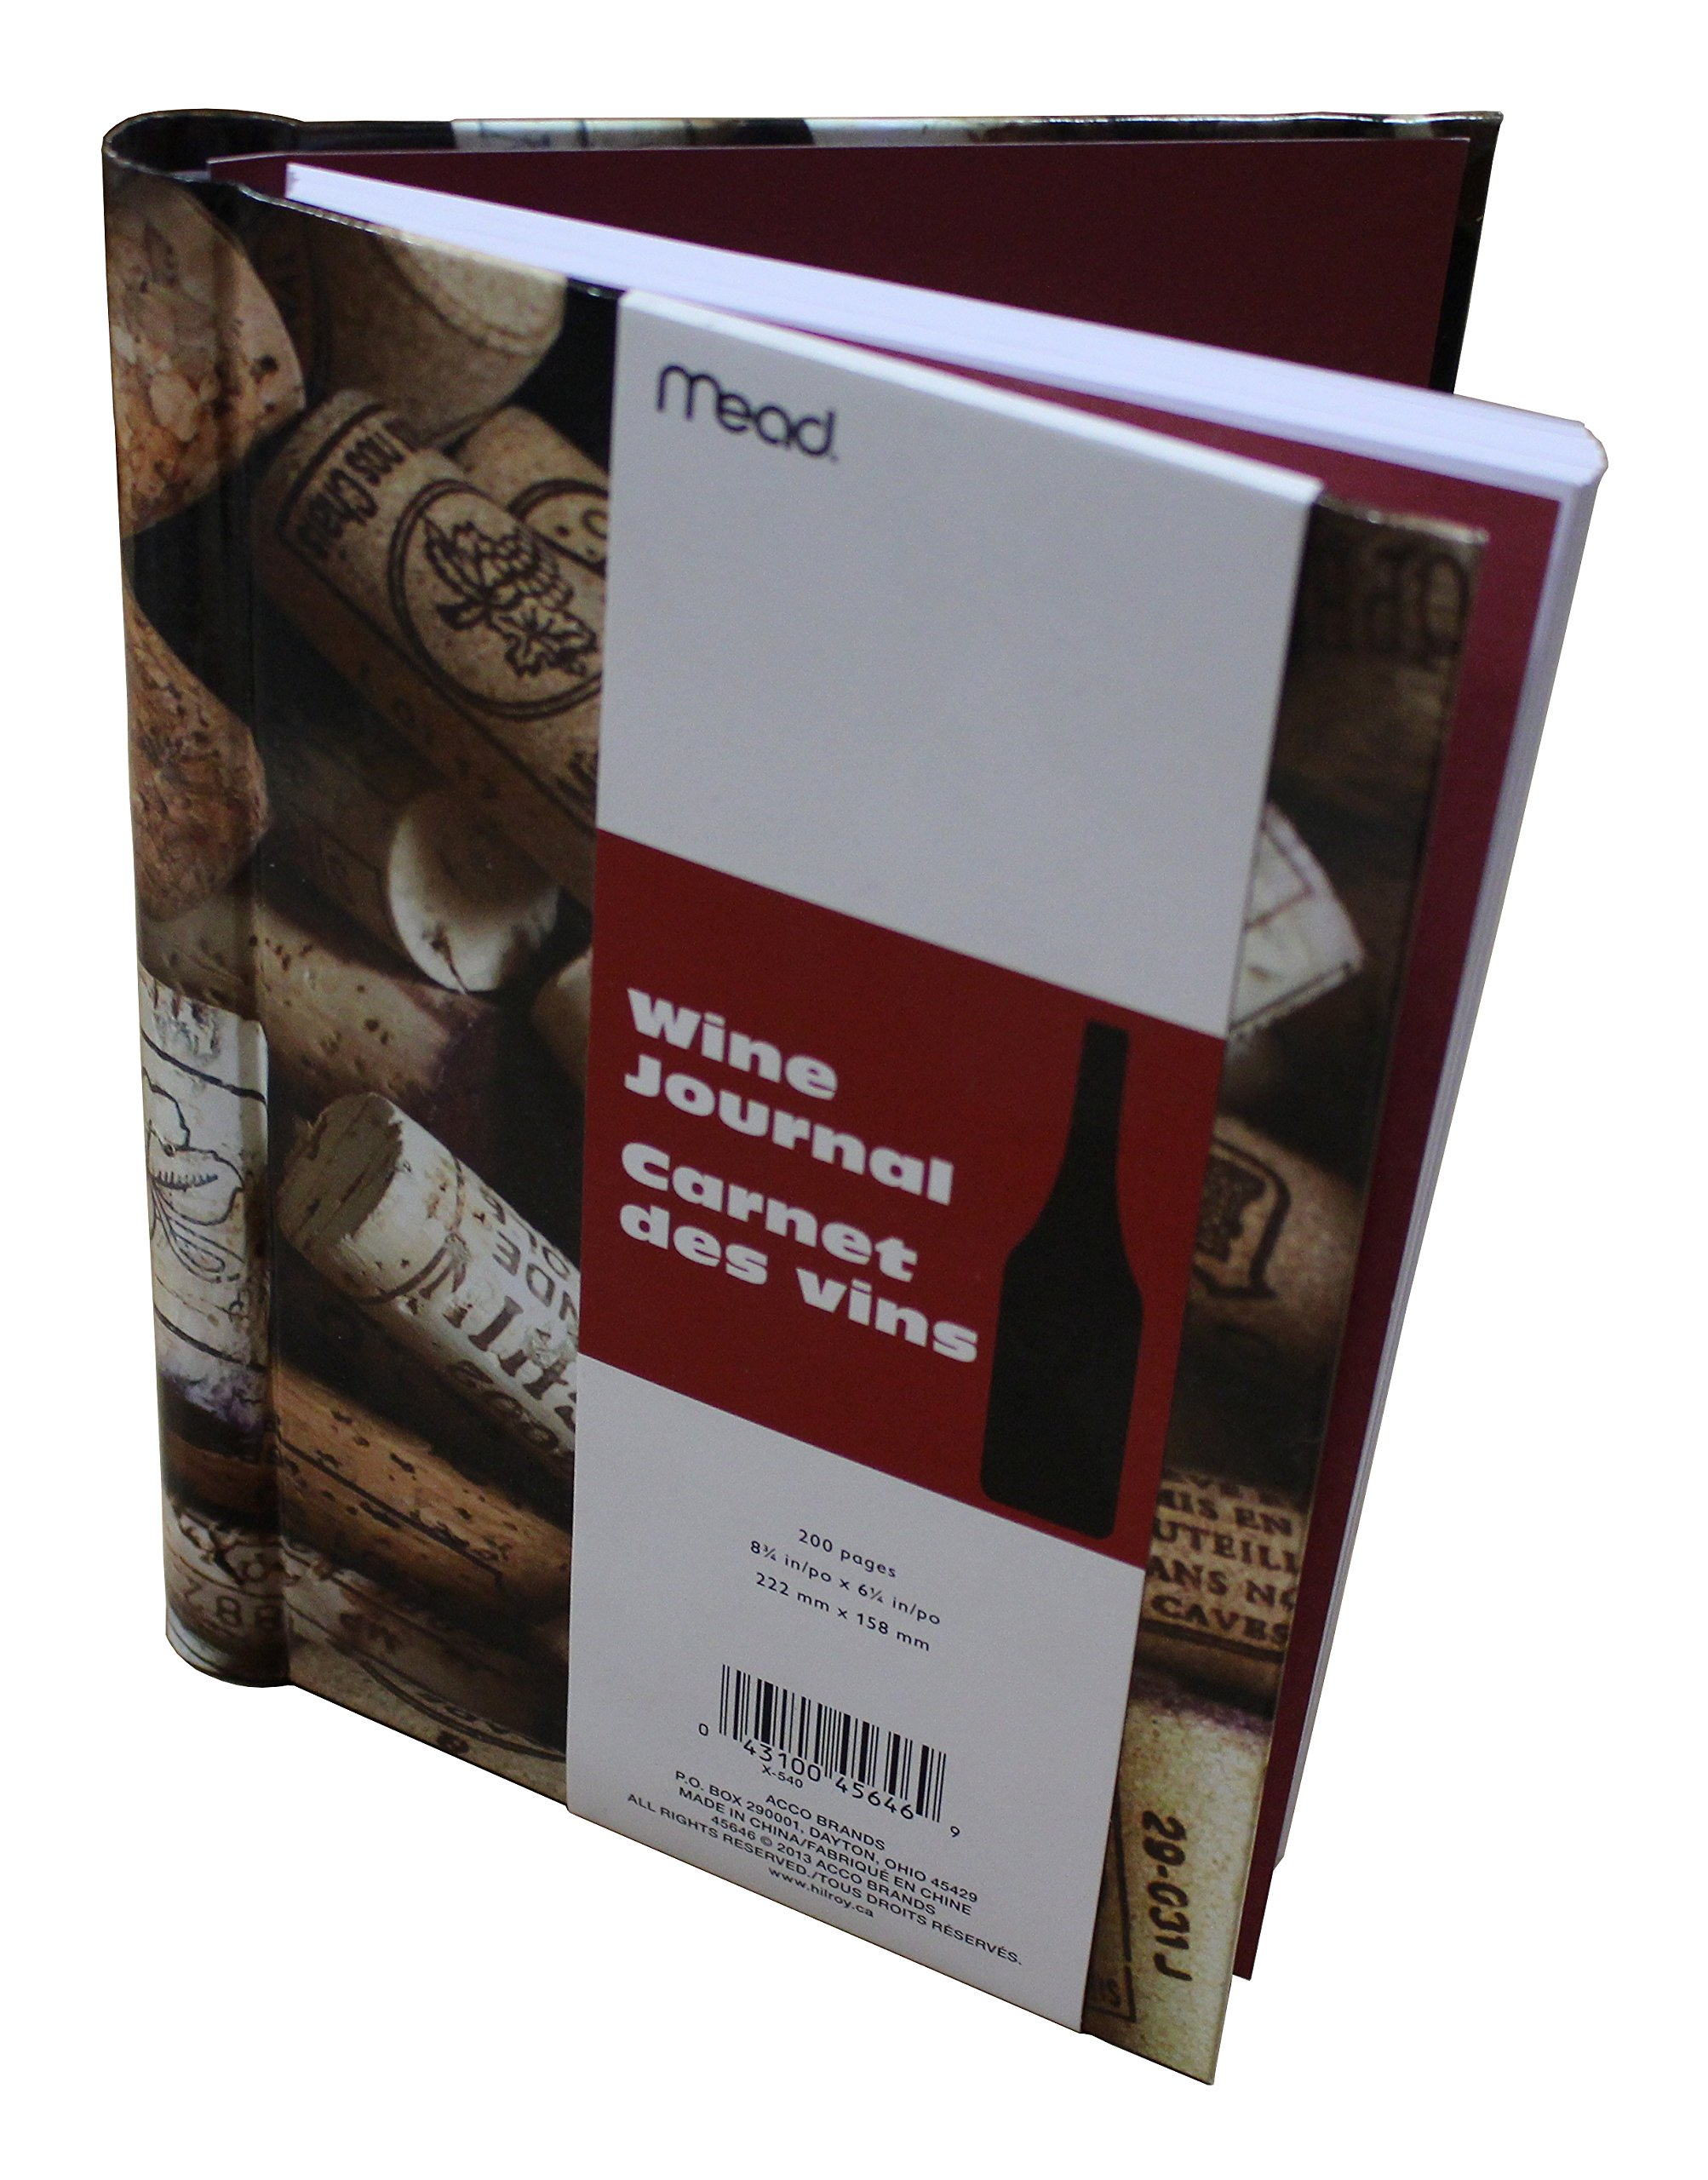 Mead Wine Journal, Dimensions 8 ¾ in x 6 ¼ in (222 mm x 158 mm), 200 pages